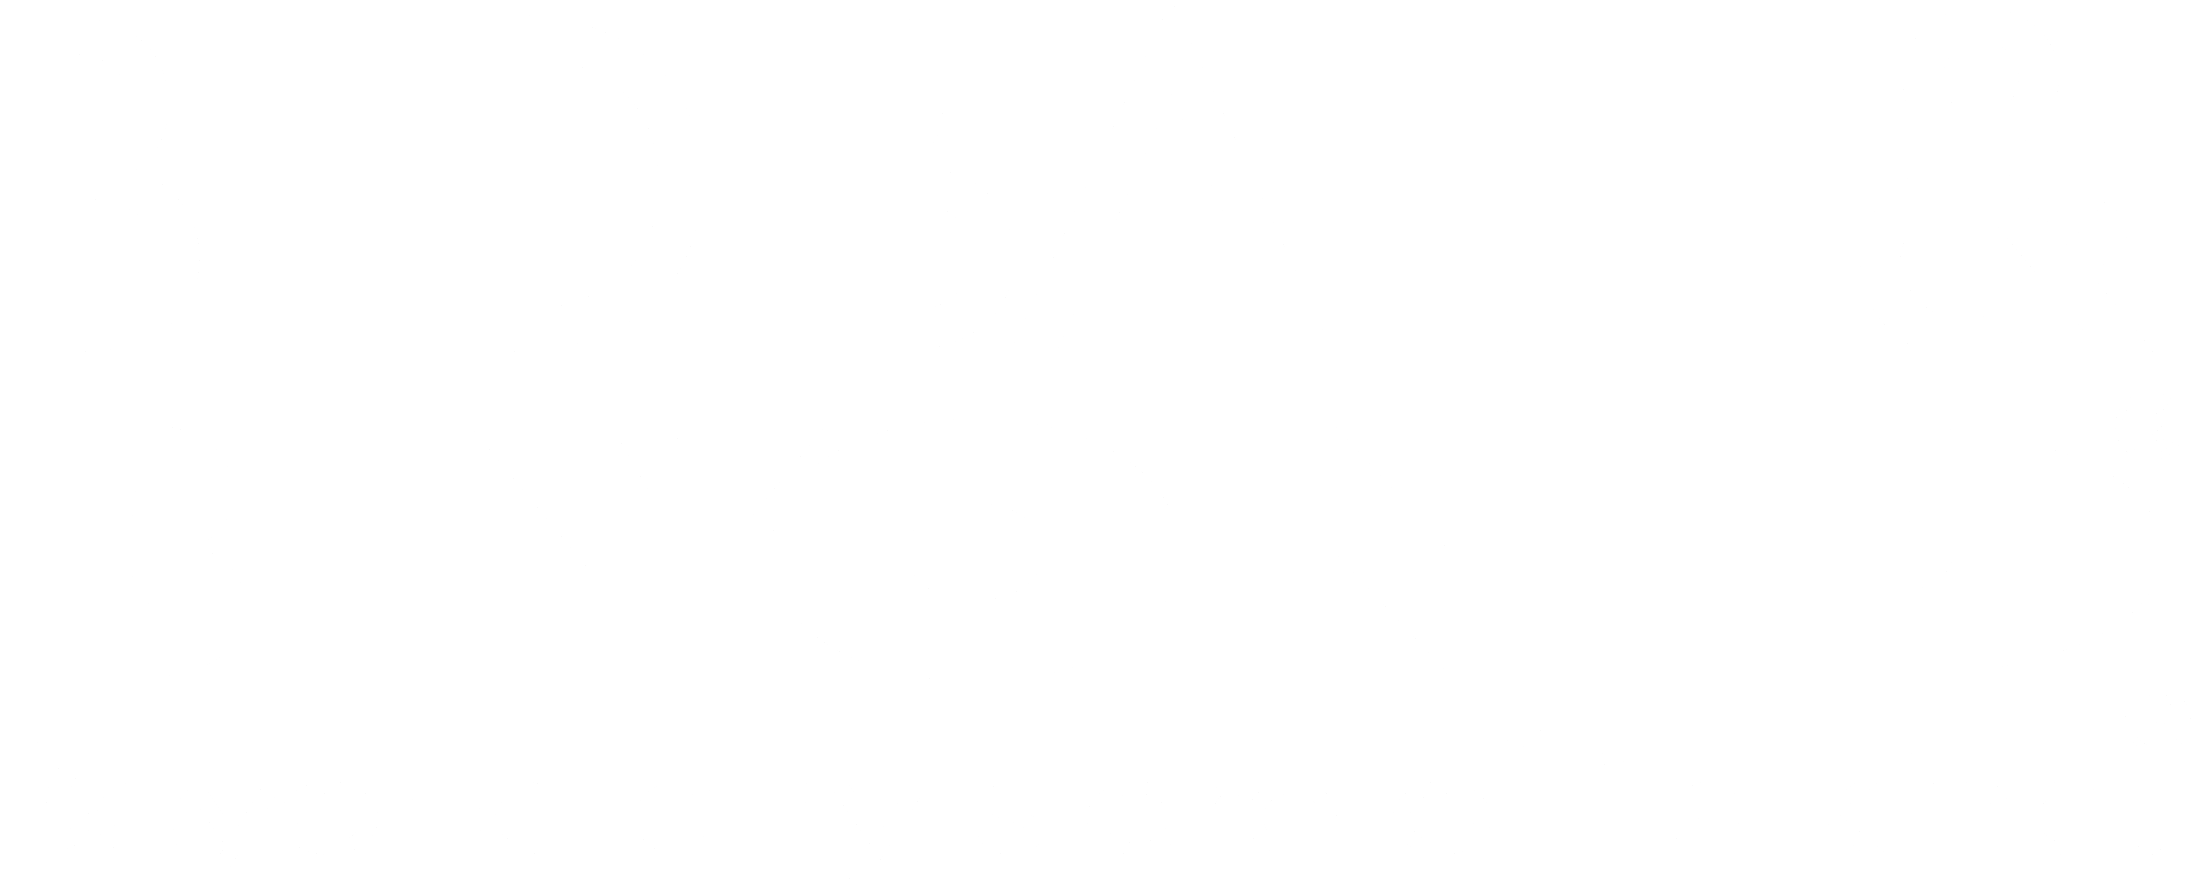 Bed Bath & Beyond Logo Black And White.